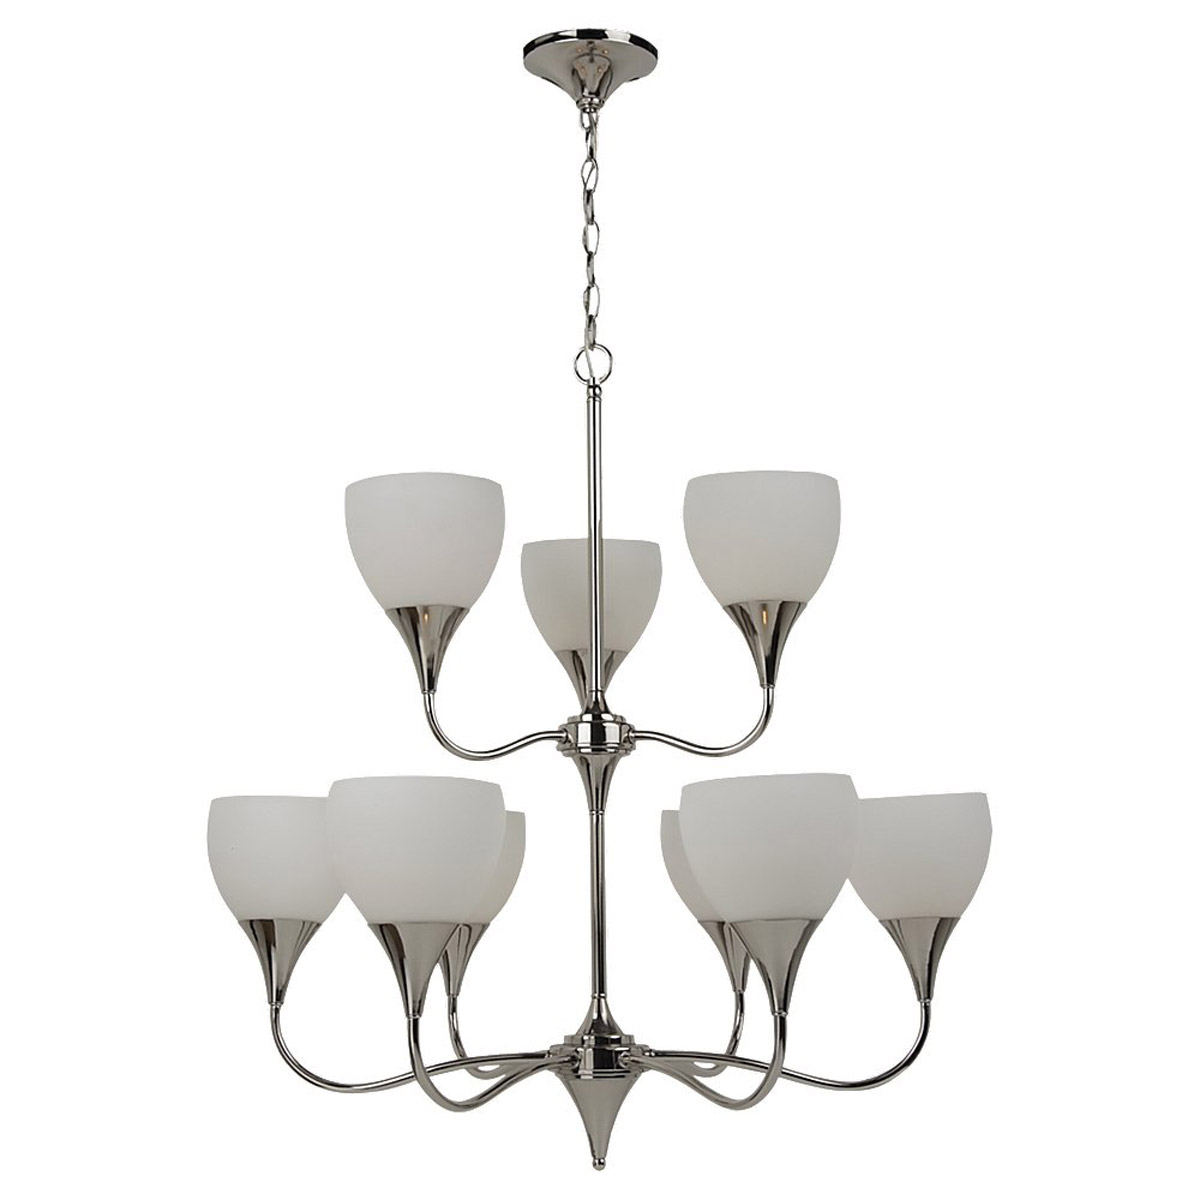 Sea Gull Lighting Solana 9 Light Chandelier in Polished Nickel 31971-841